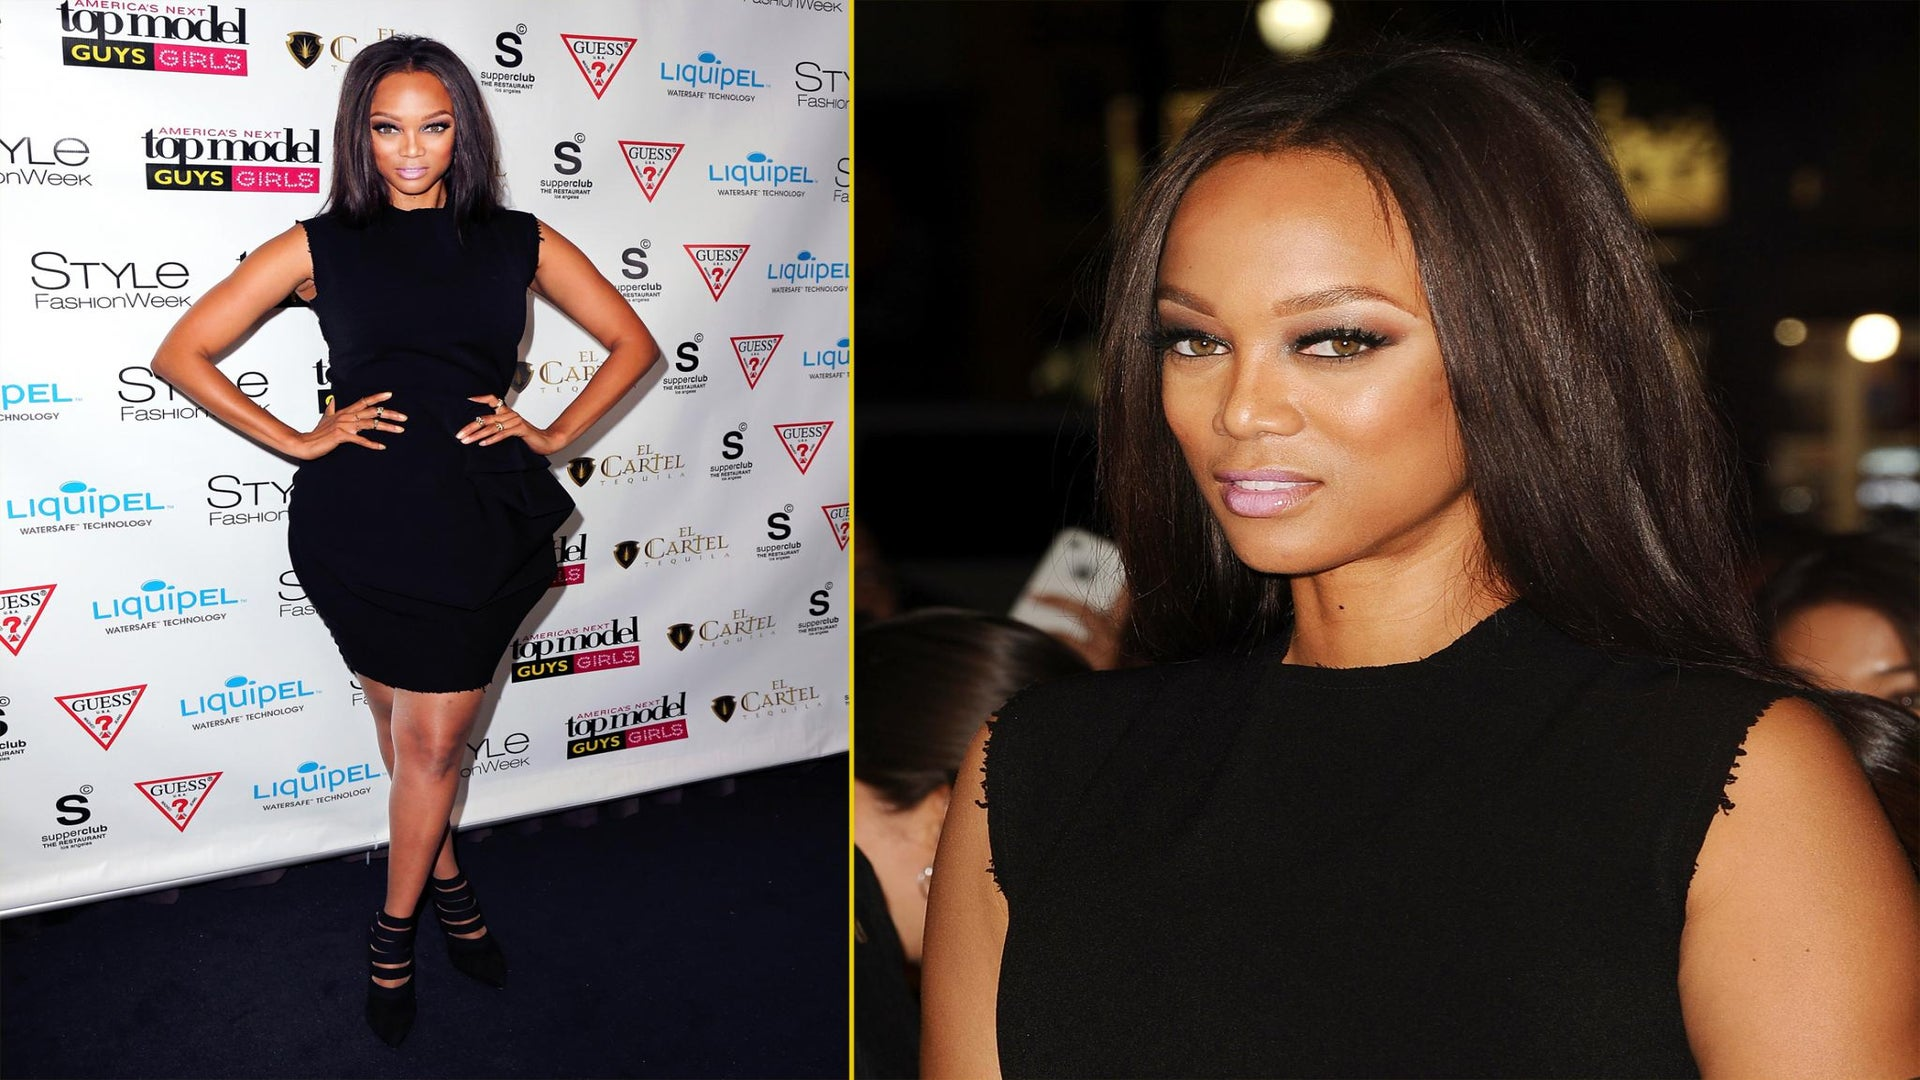 Tyra Banks: 'I Don't Believe in Diets'